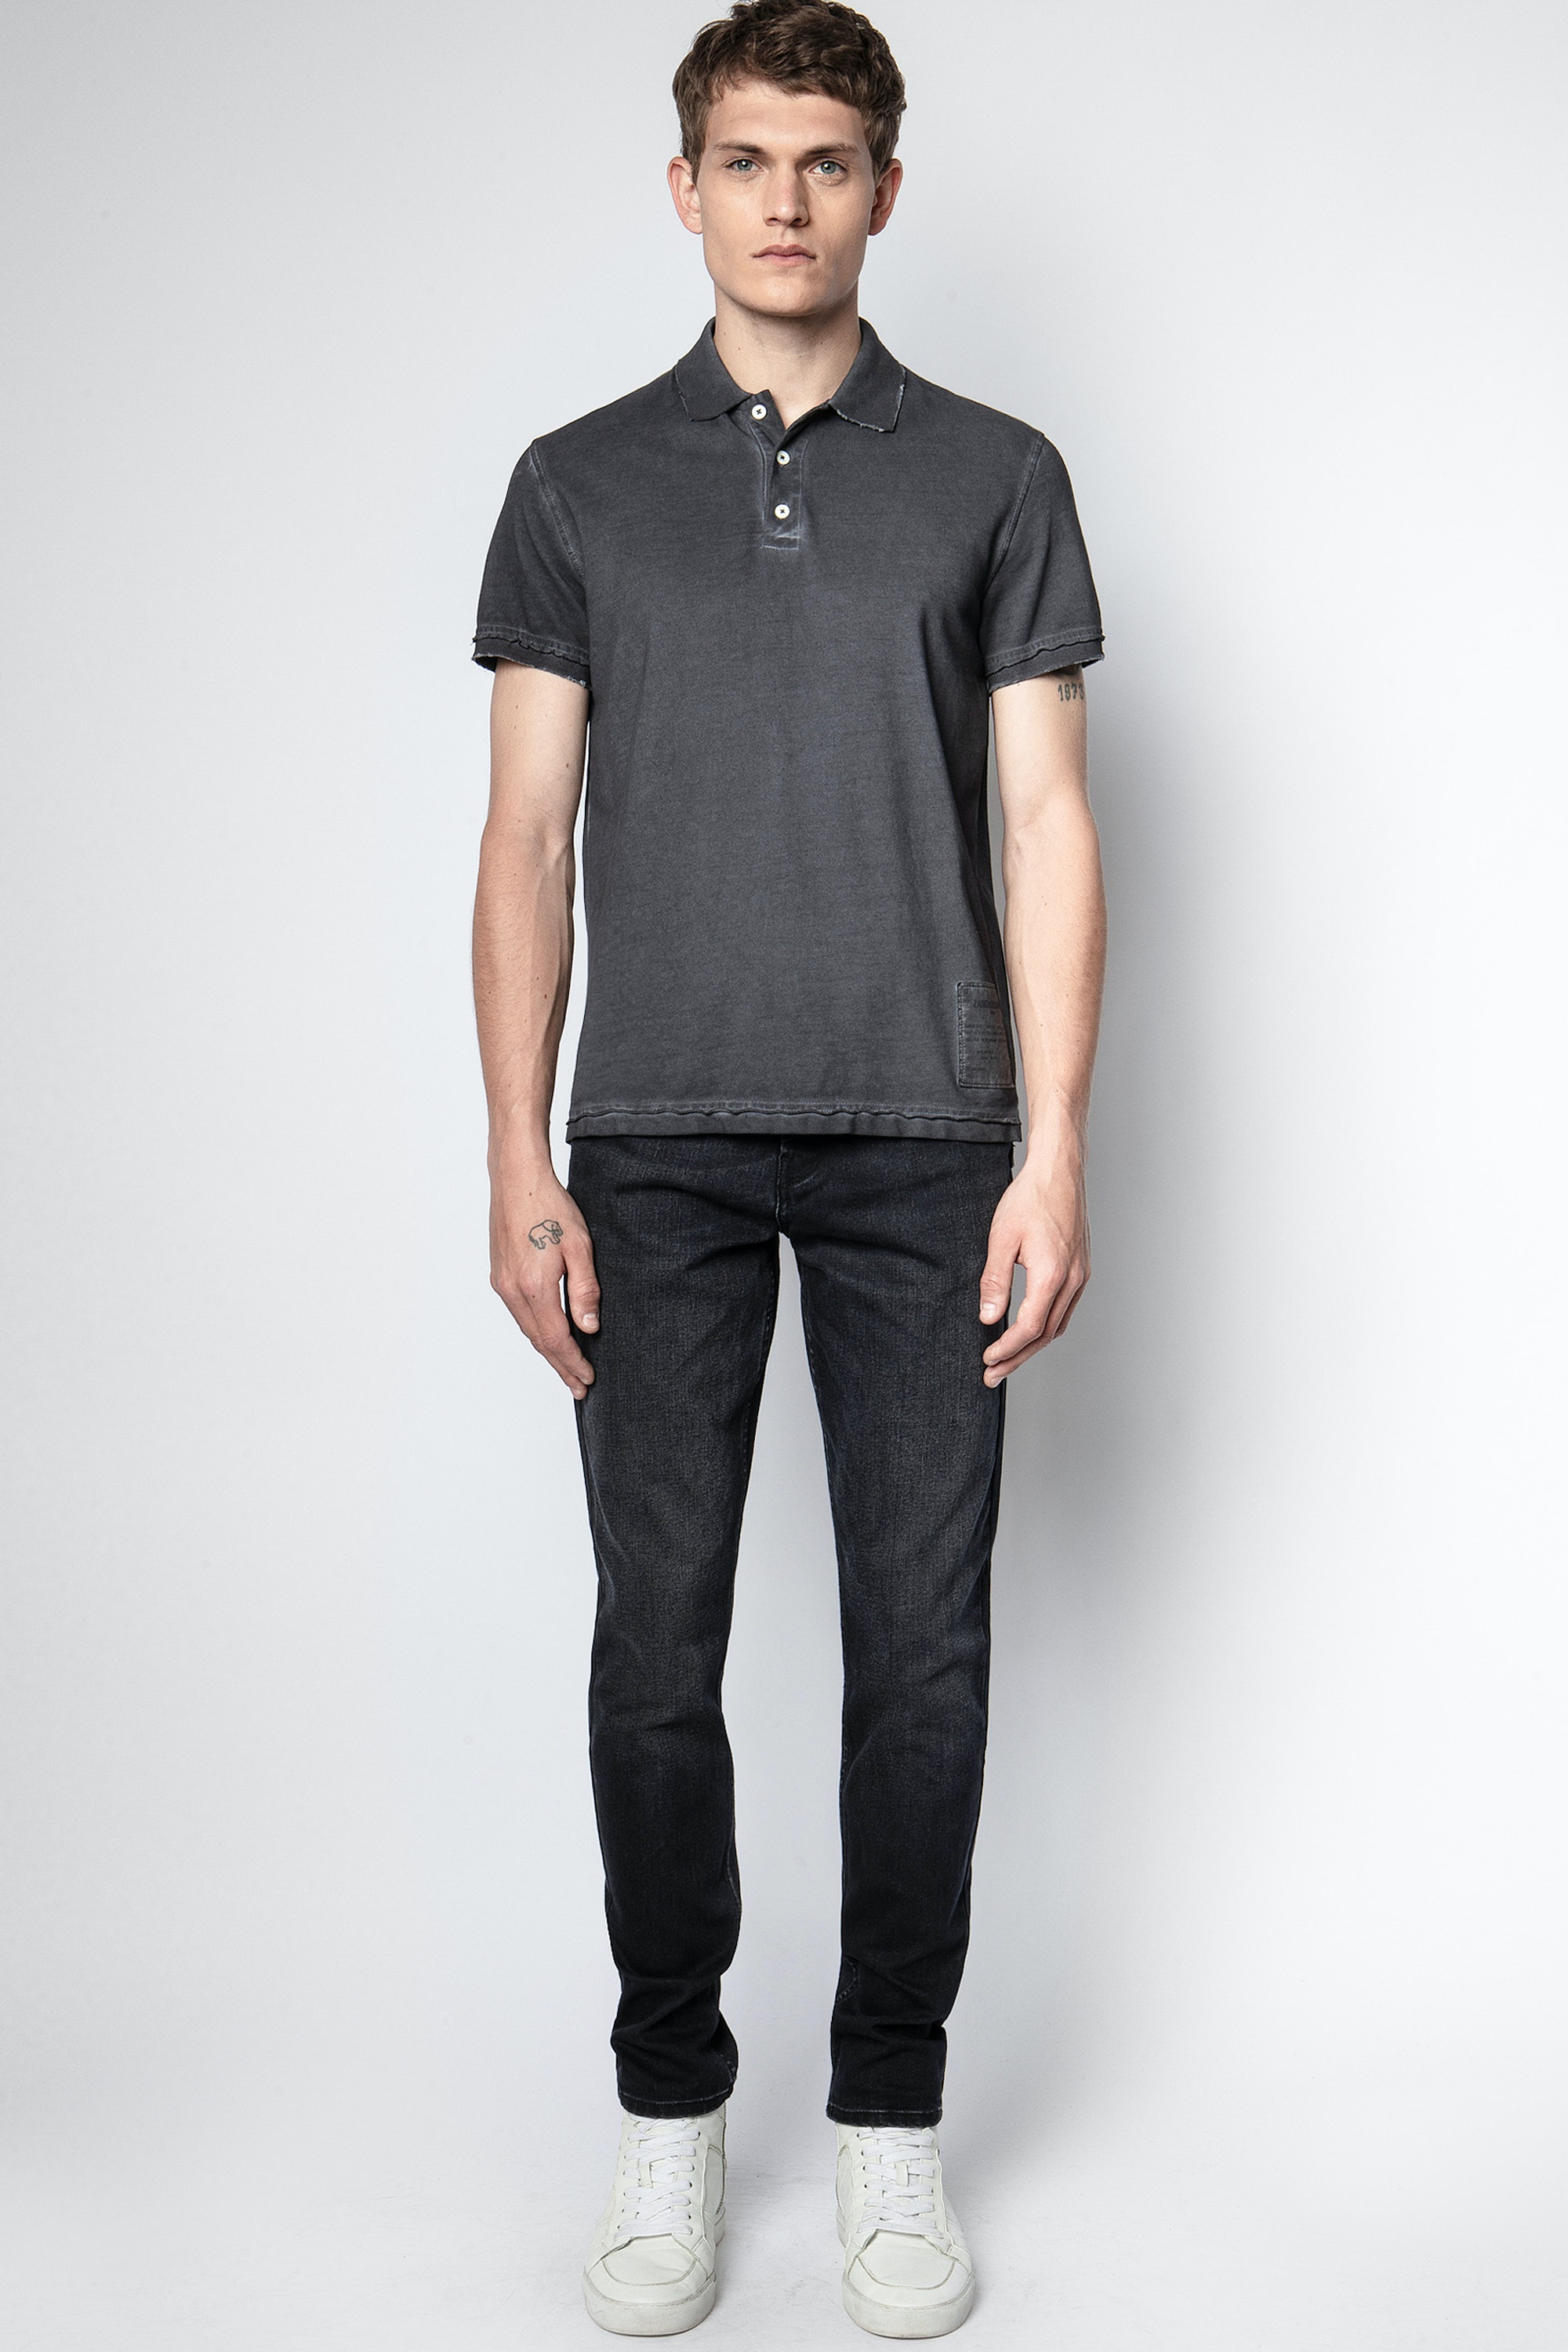 Trot Cold Dyed T-shirt